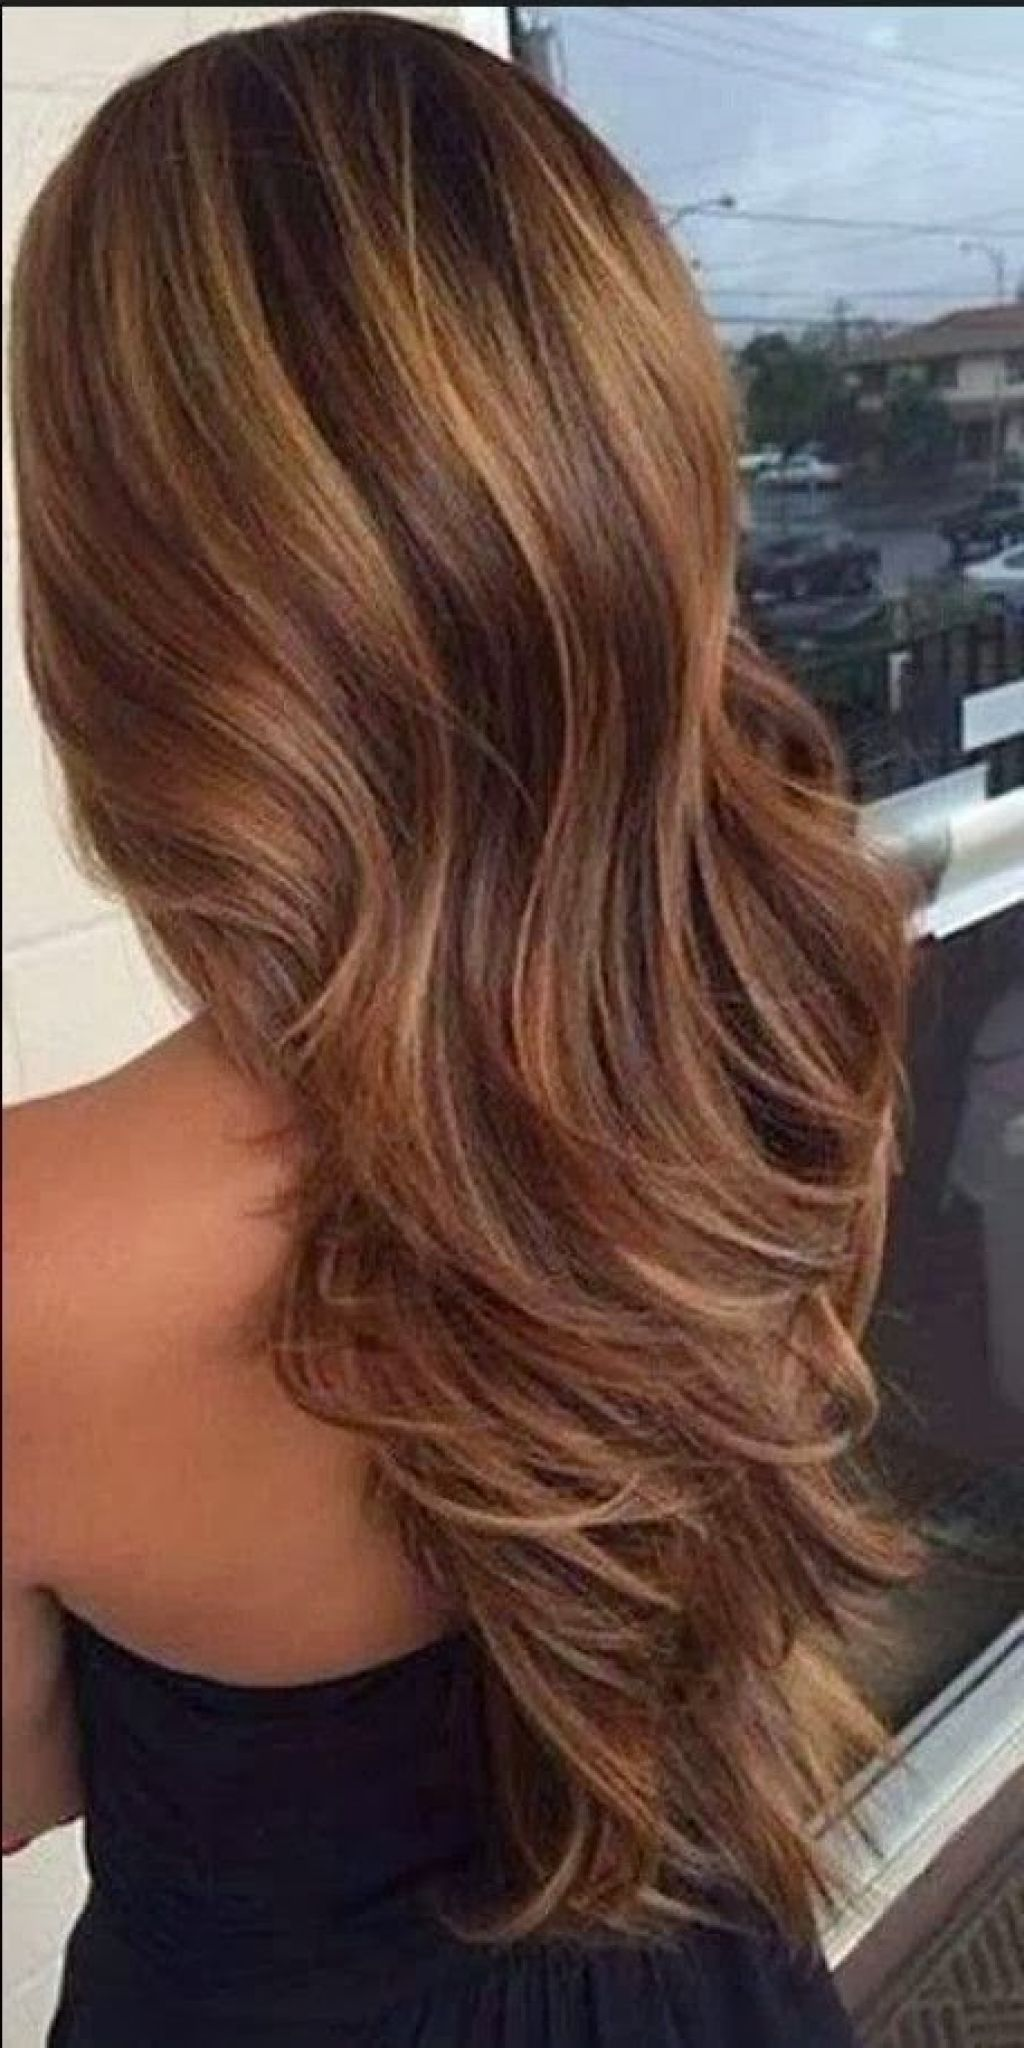 Awesome Brown Hair With Caramel Highlights | Hair ...